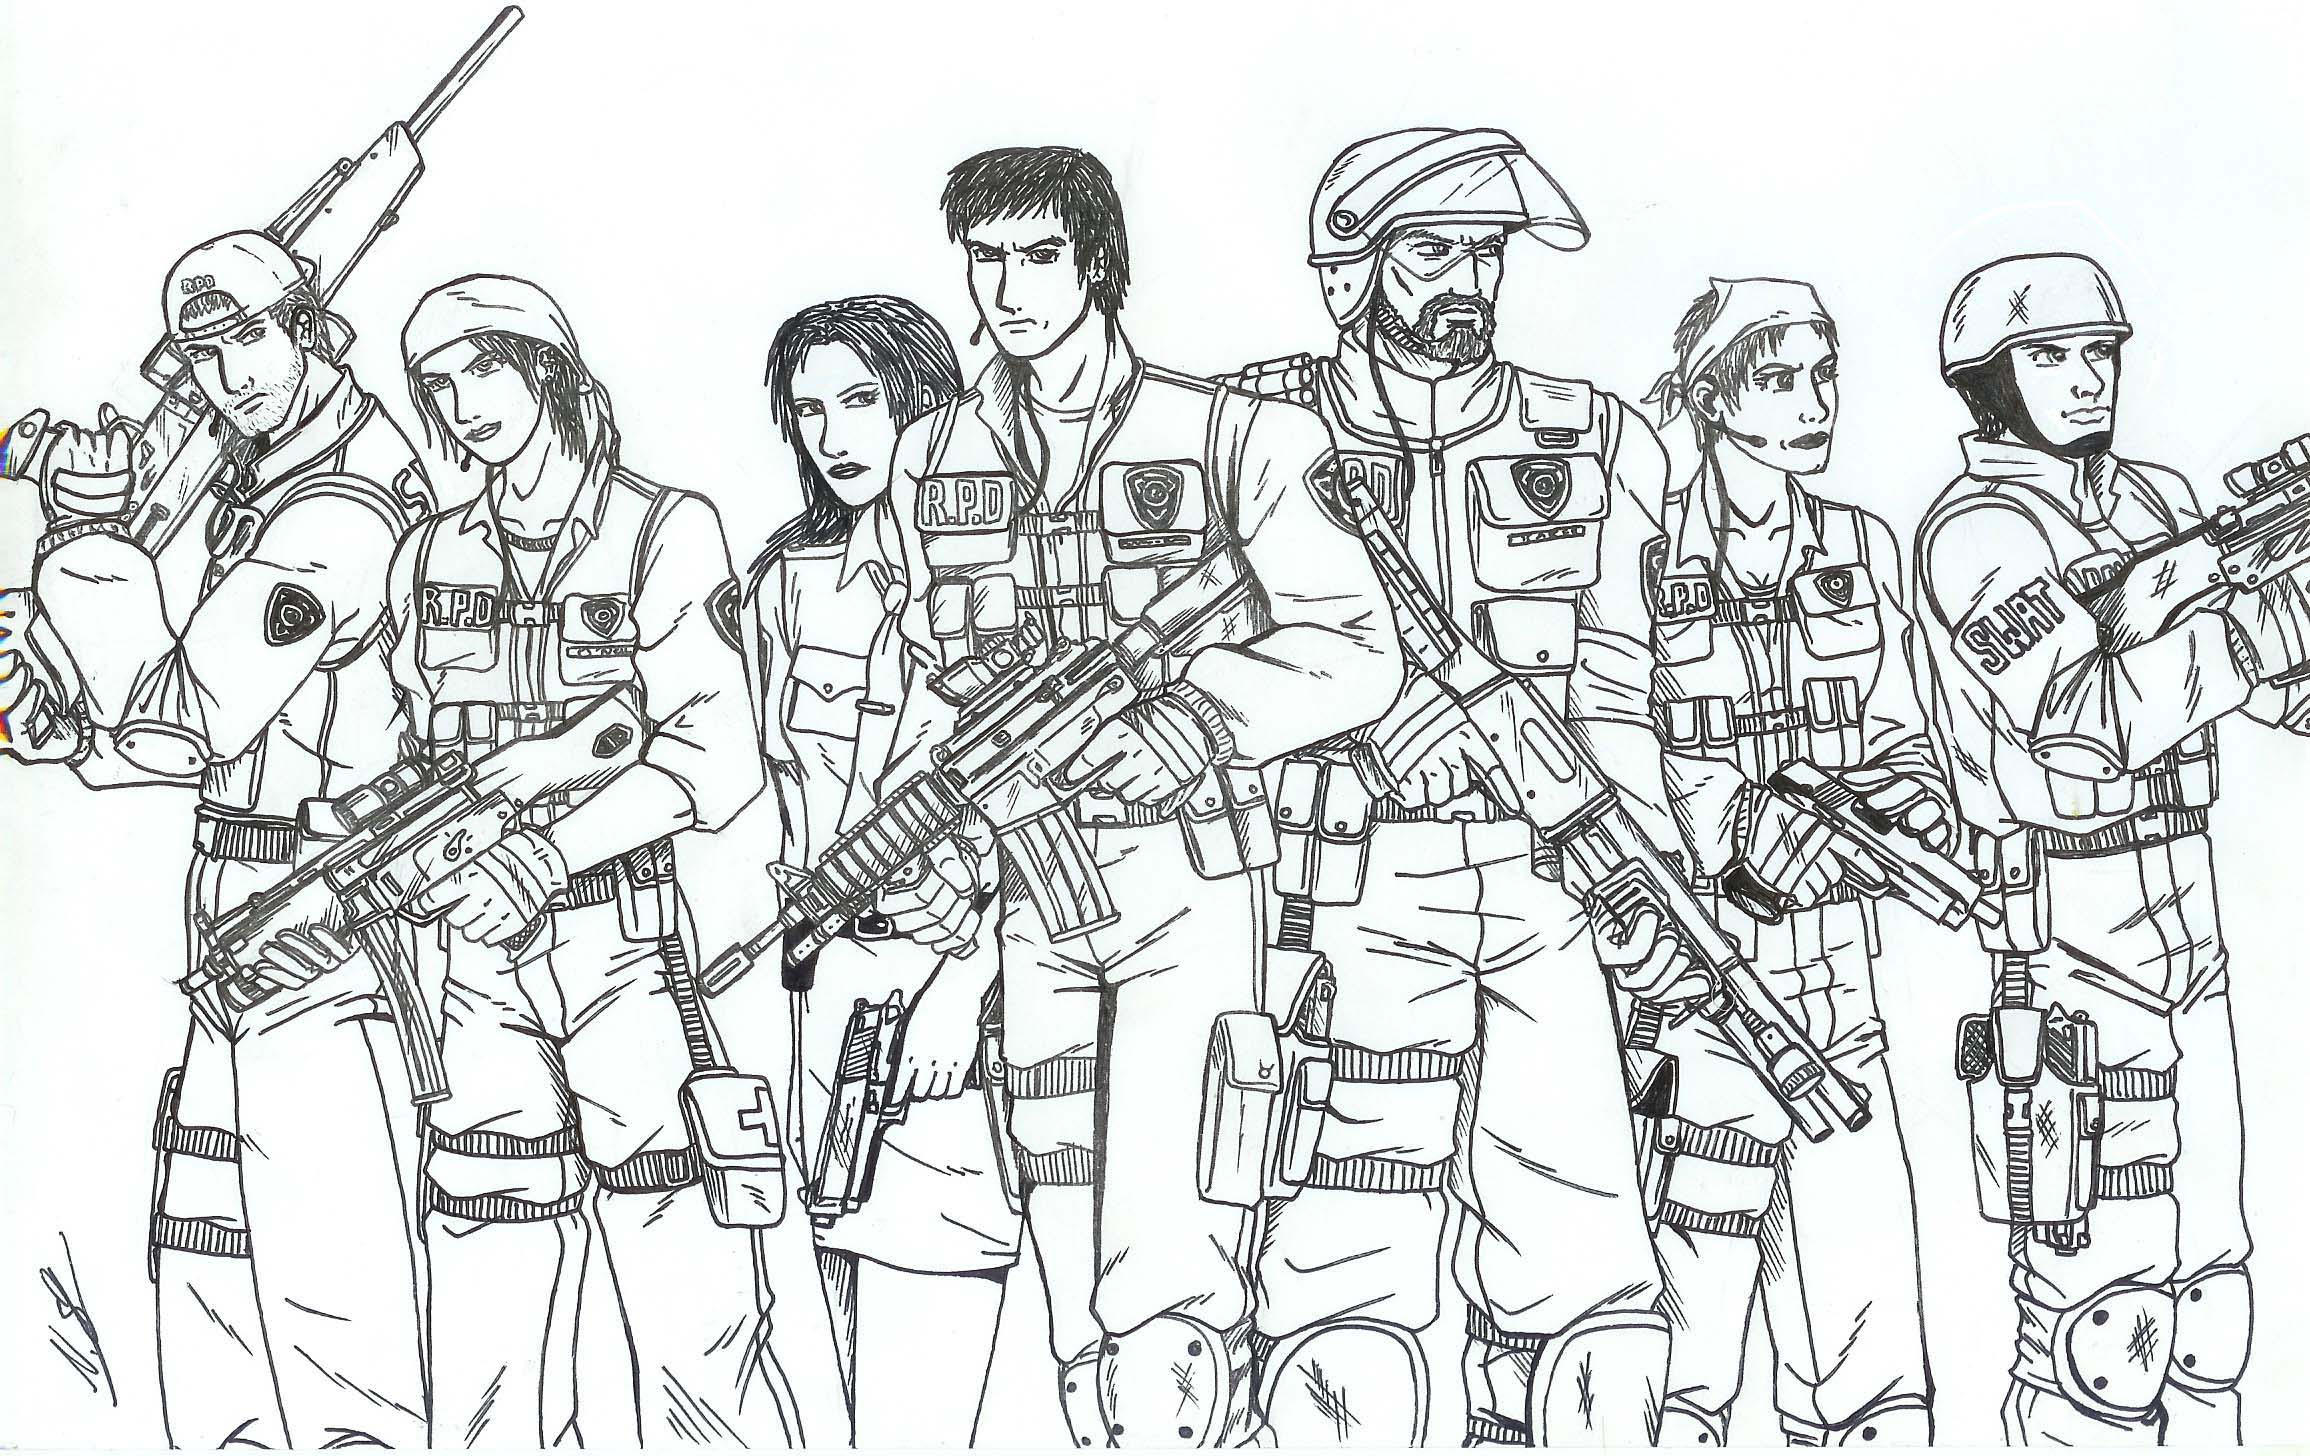 R p d swat team by taresh on deviantart for Swat team coloring pages